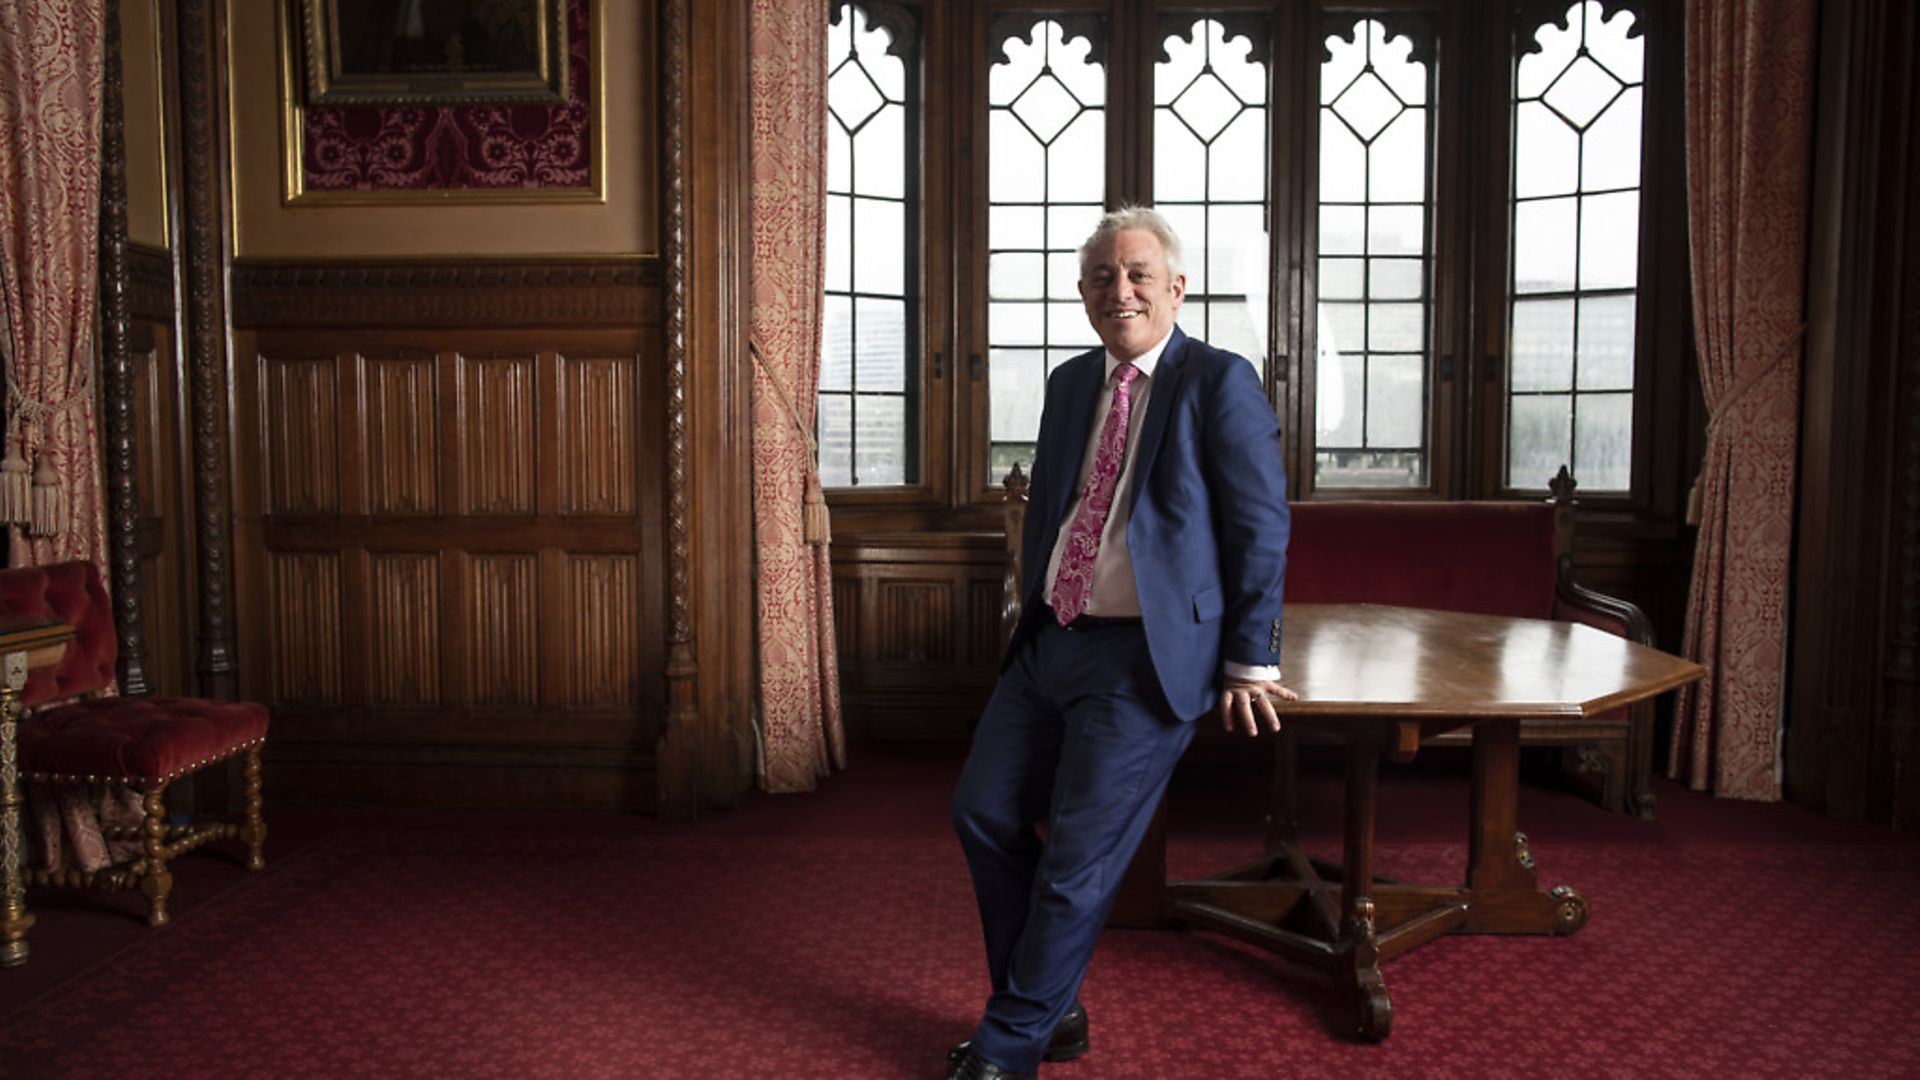 John Bercow MP poses for a portrait inside the House of Commons. (Photo by Dan Kitwood/Getty Images) - Credit: Getty Images